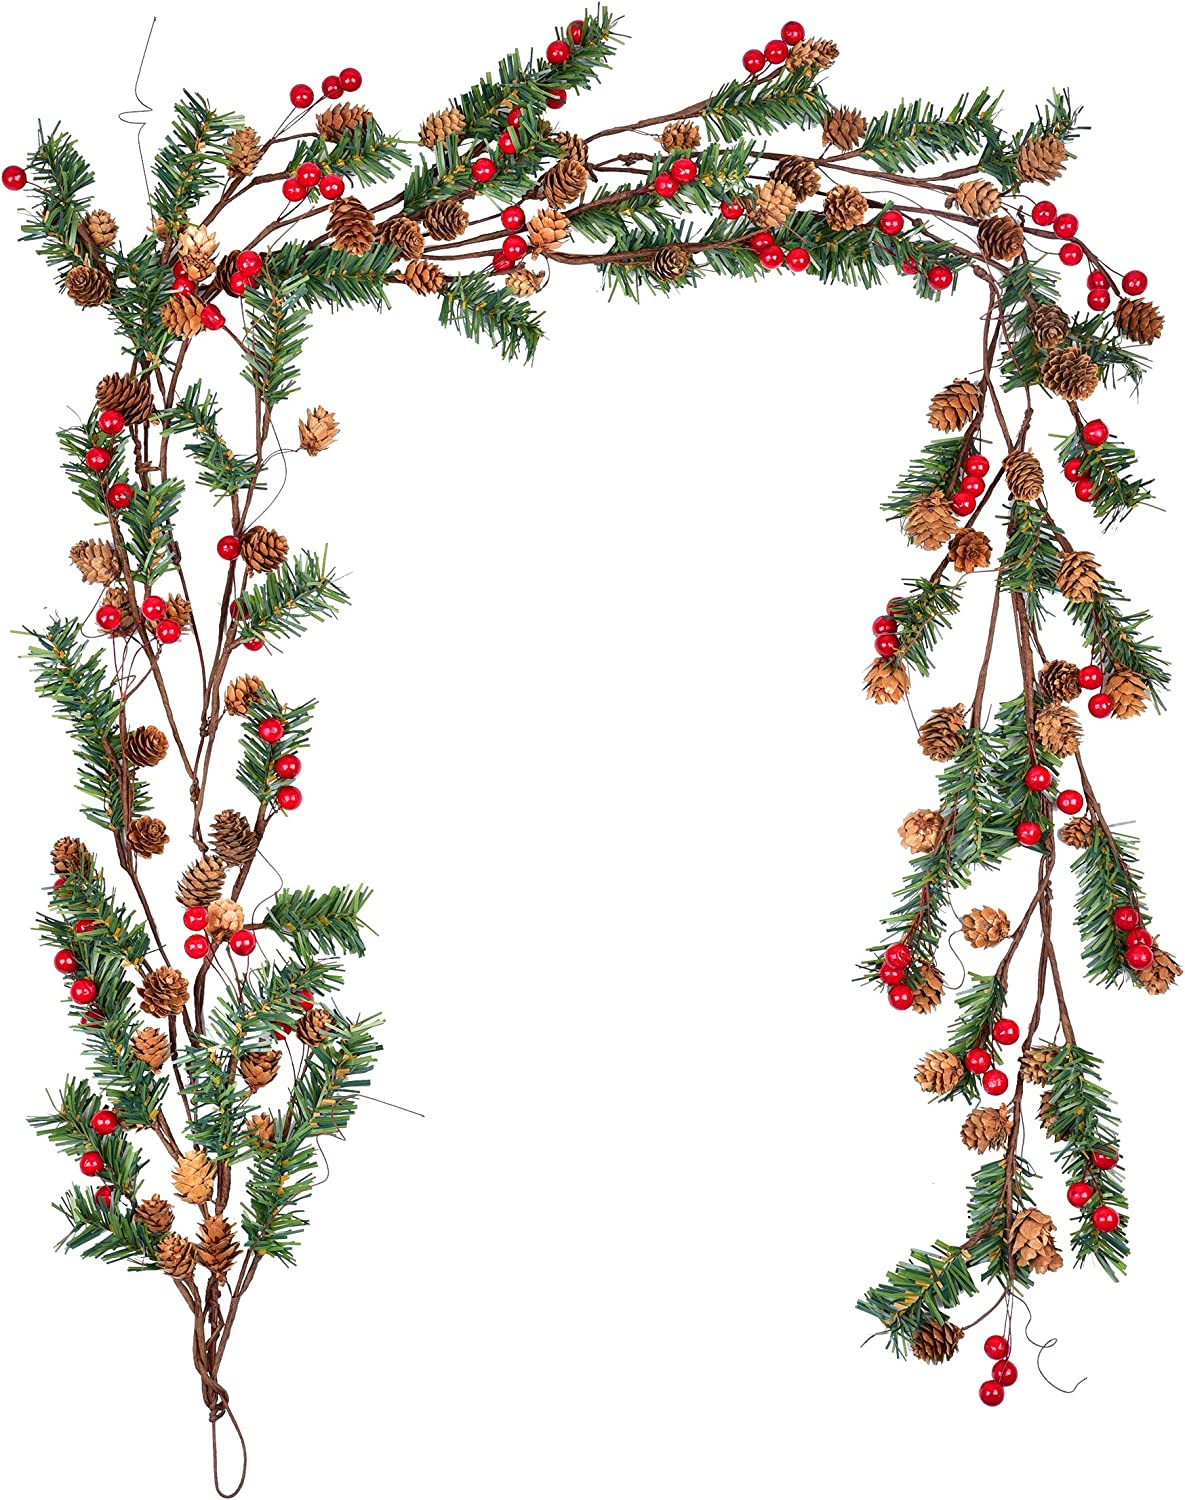 4Ft Christmas Garland with Pine Cone Red Berry Artificail Garland Indoor Outdoor for Winter Holiday New Year Decor